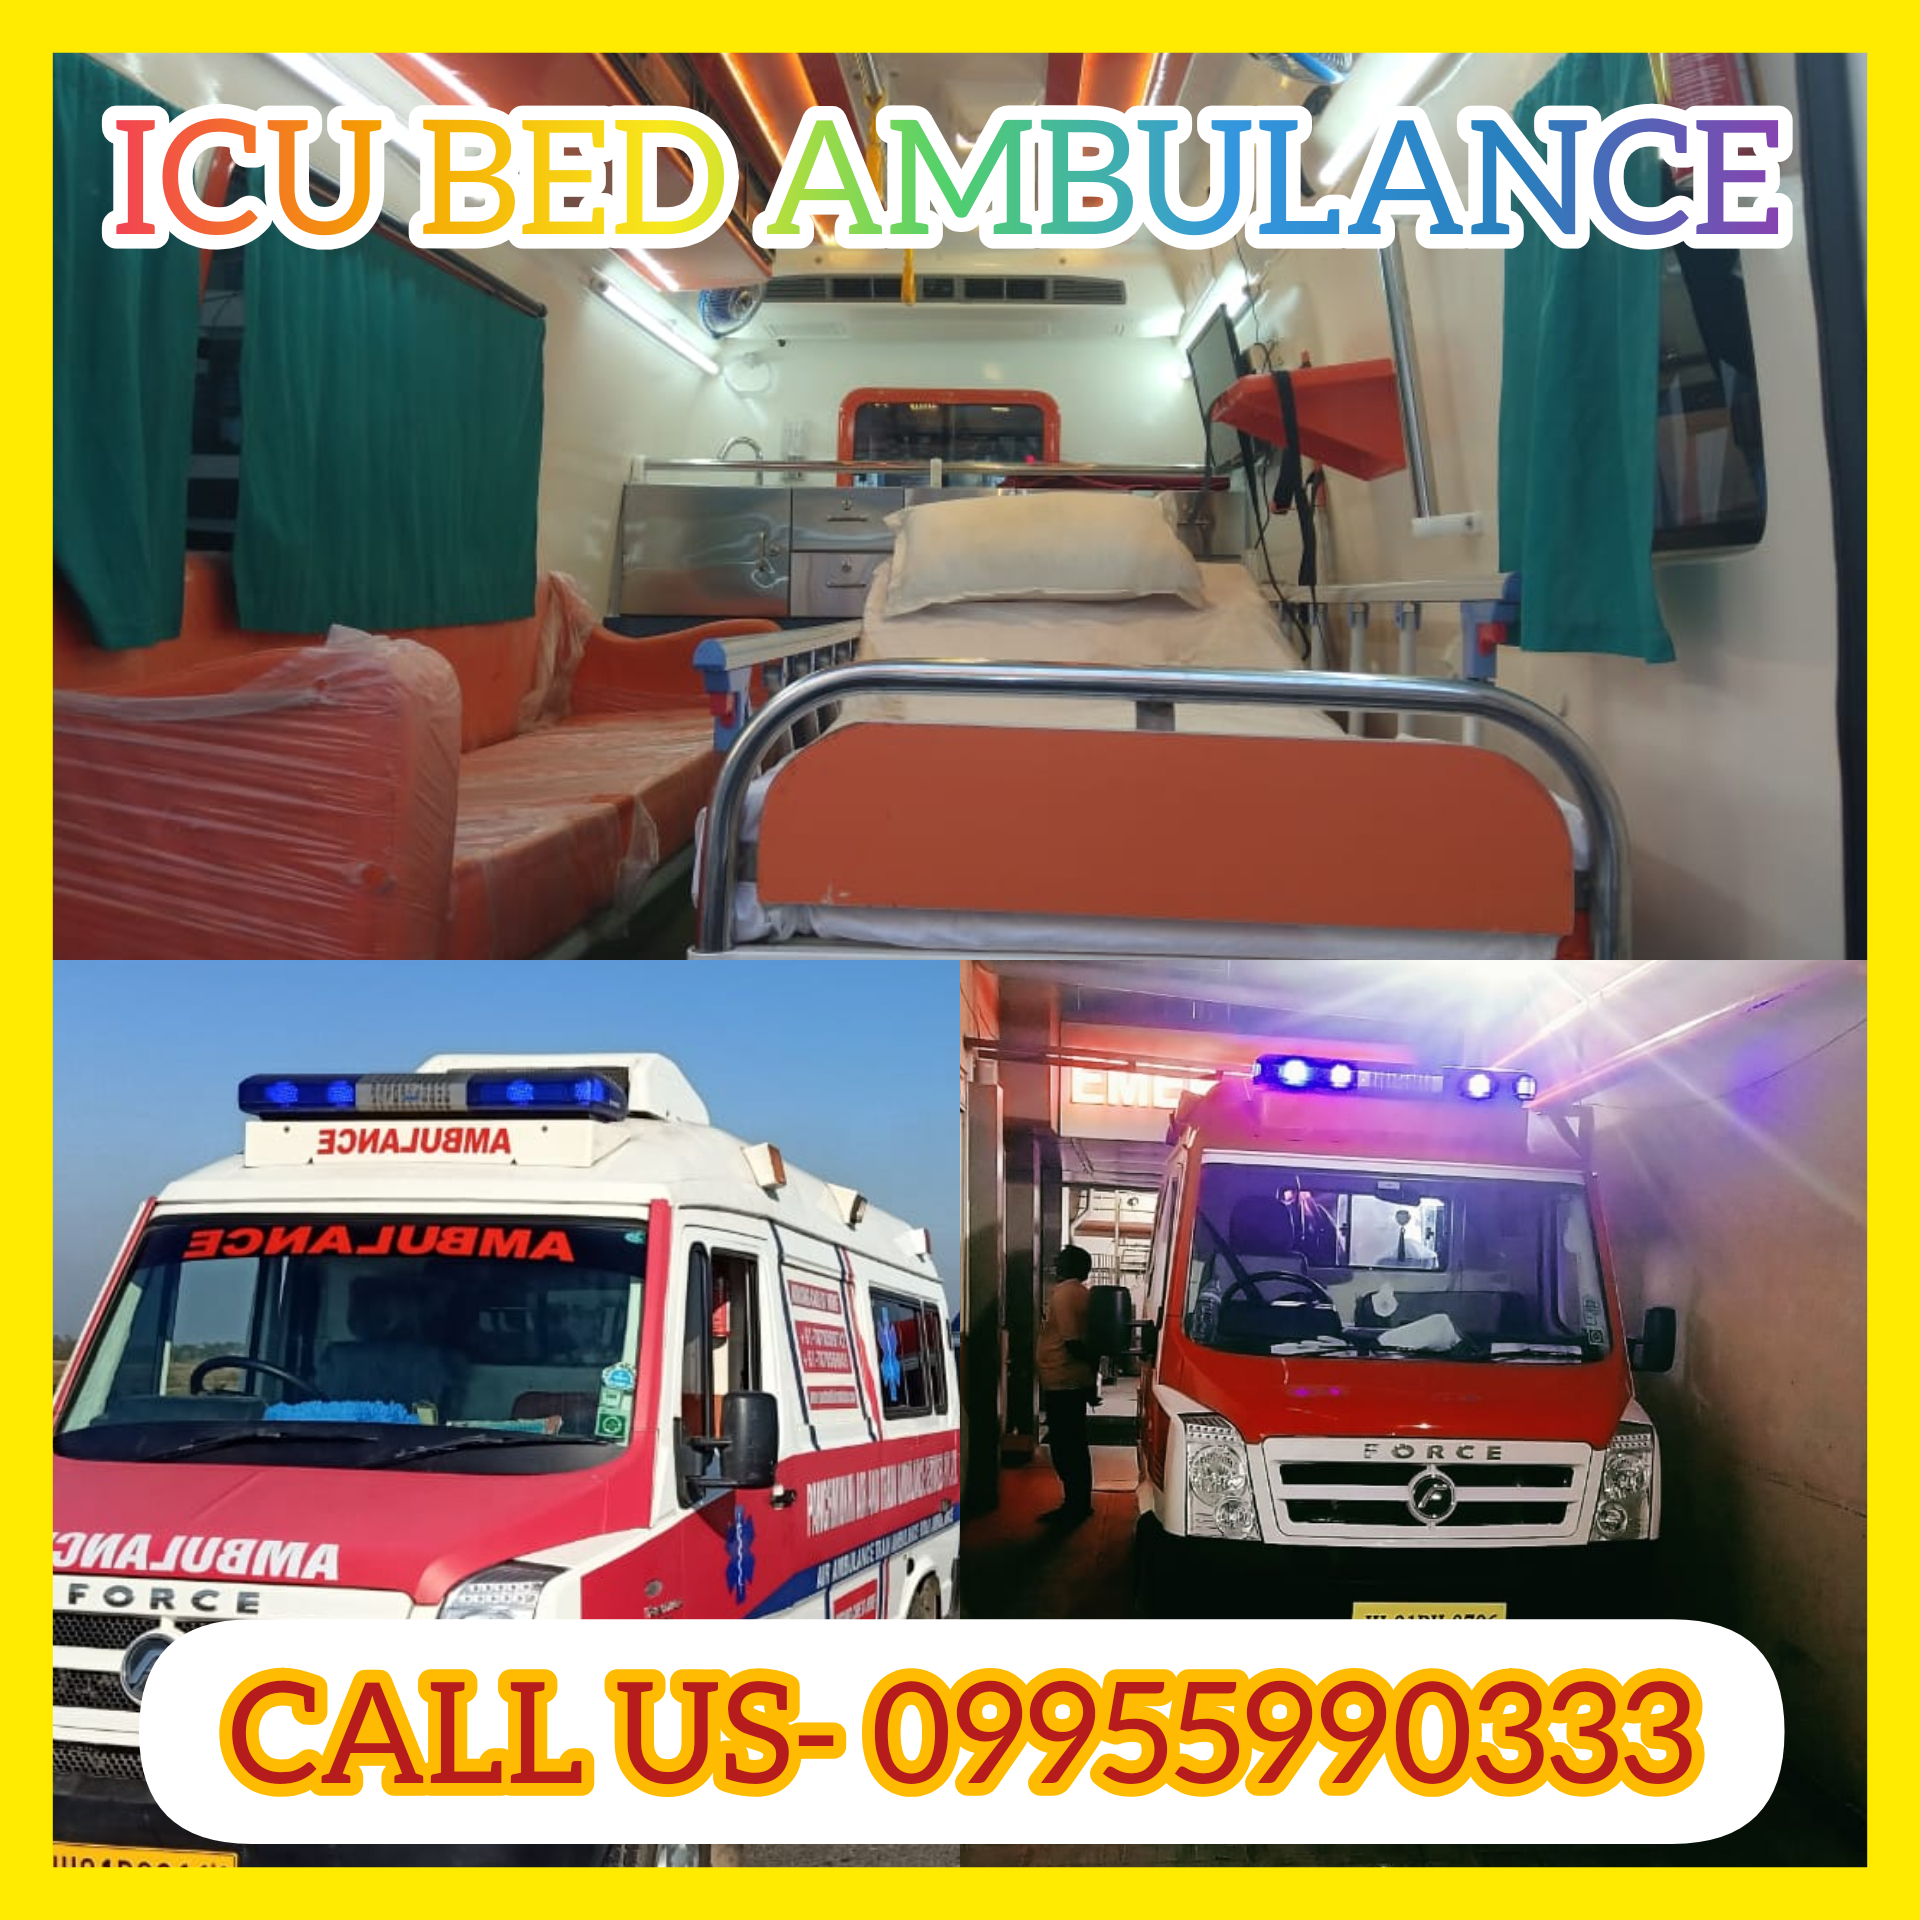 Panchmukhi North East Ambulance Service in Silchar – ICU Ambulance